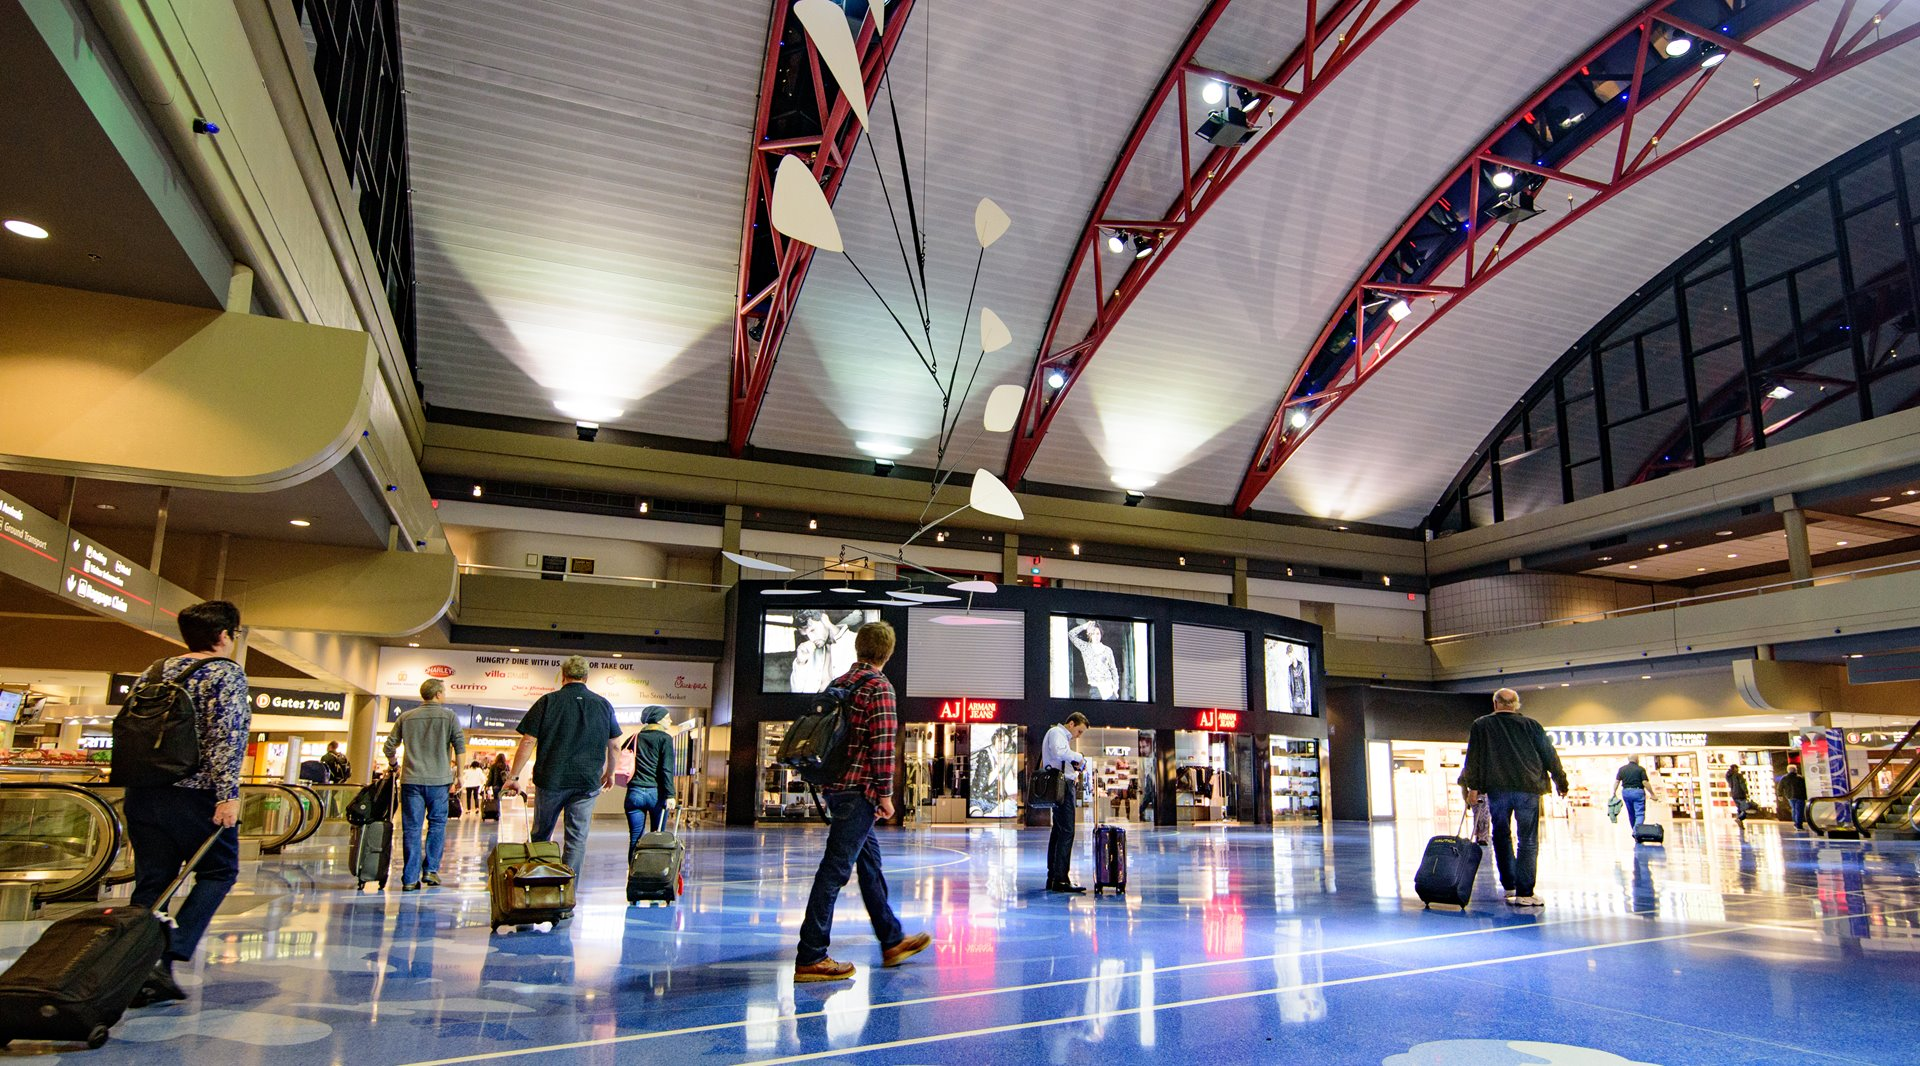 PITTSBURGH INTERNATIONAL AIRPORT HAS BUSIEST SUMMER SINCE 2007